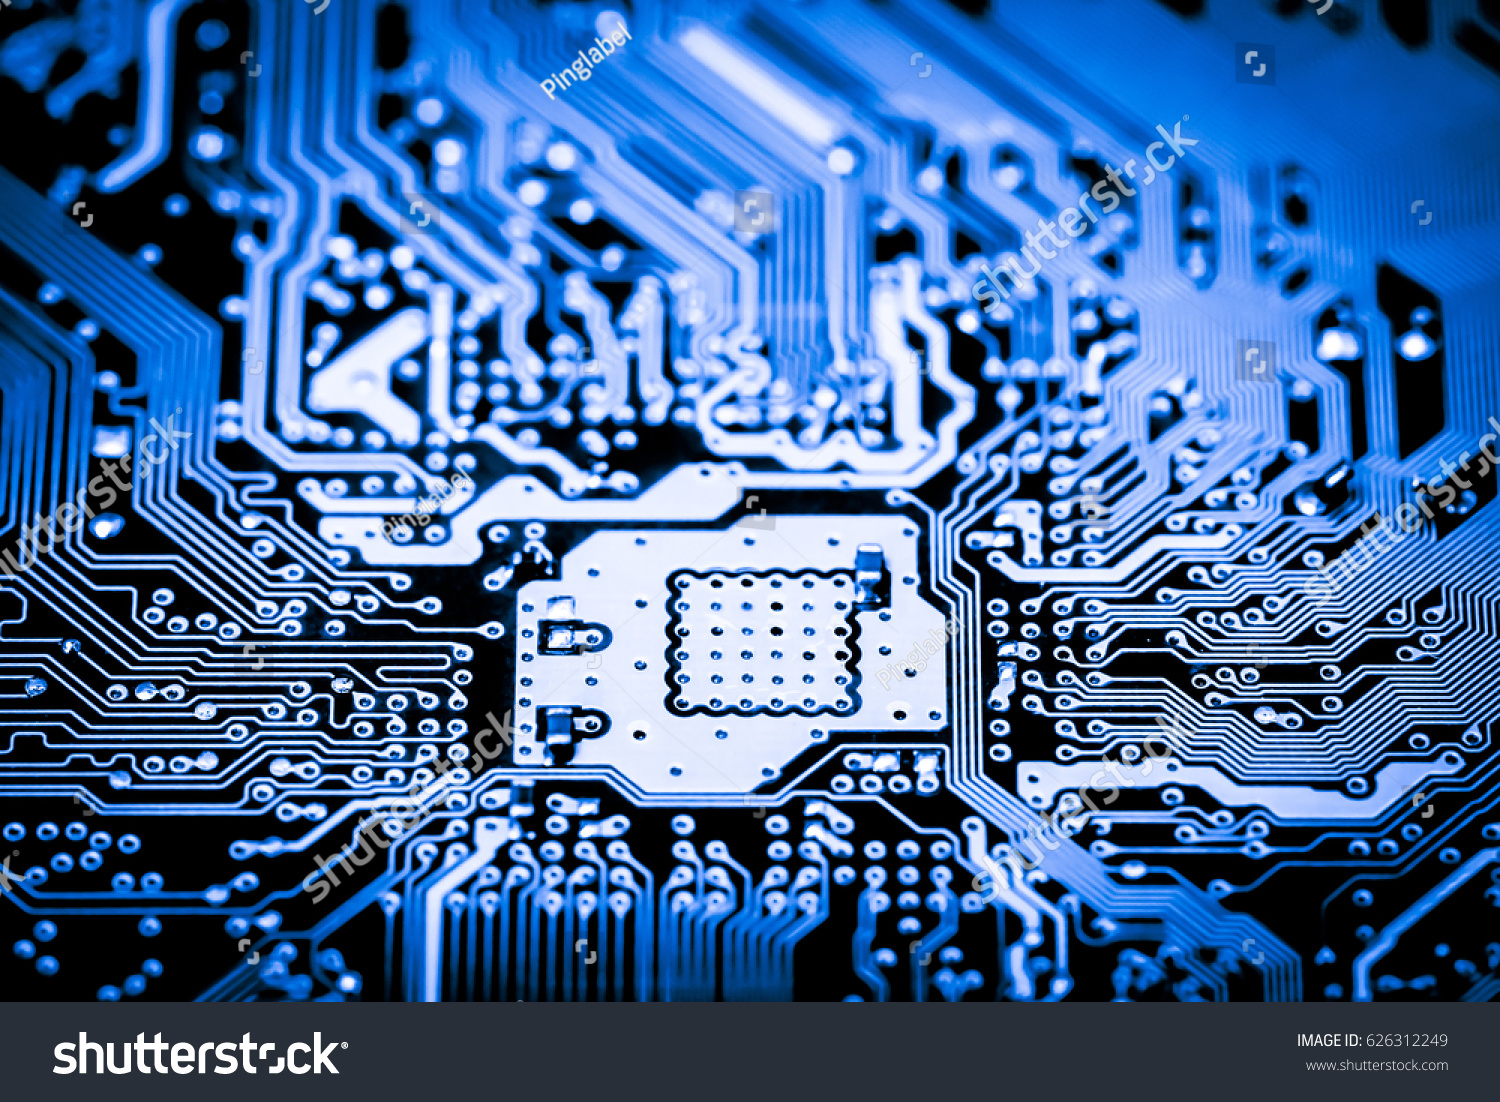 Close Up Of Electronic Circuits In Technology On Mainboard Circuit And Logic Design Id 626312249